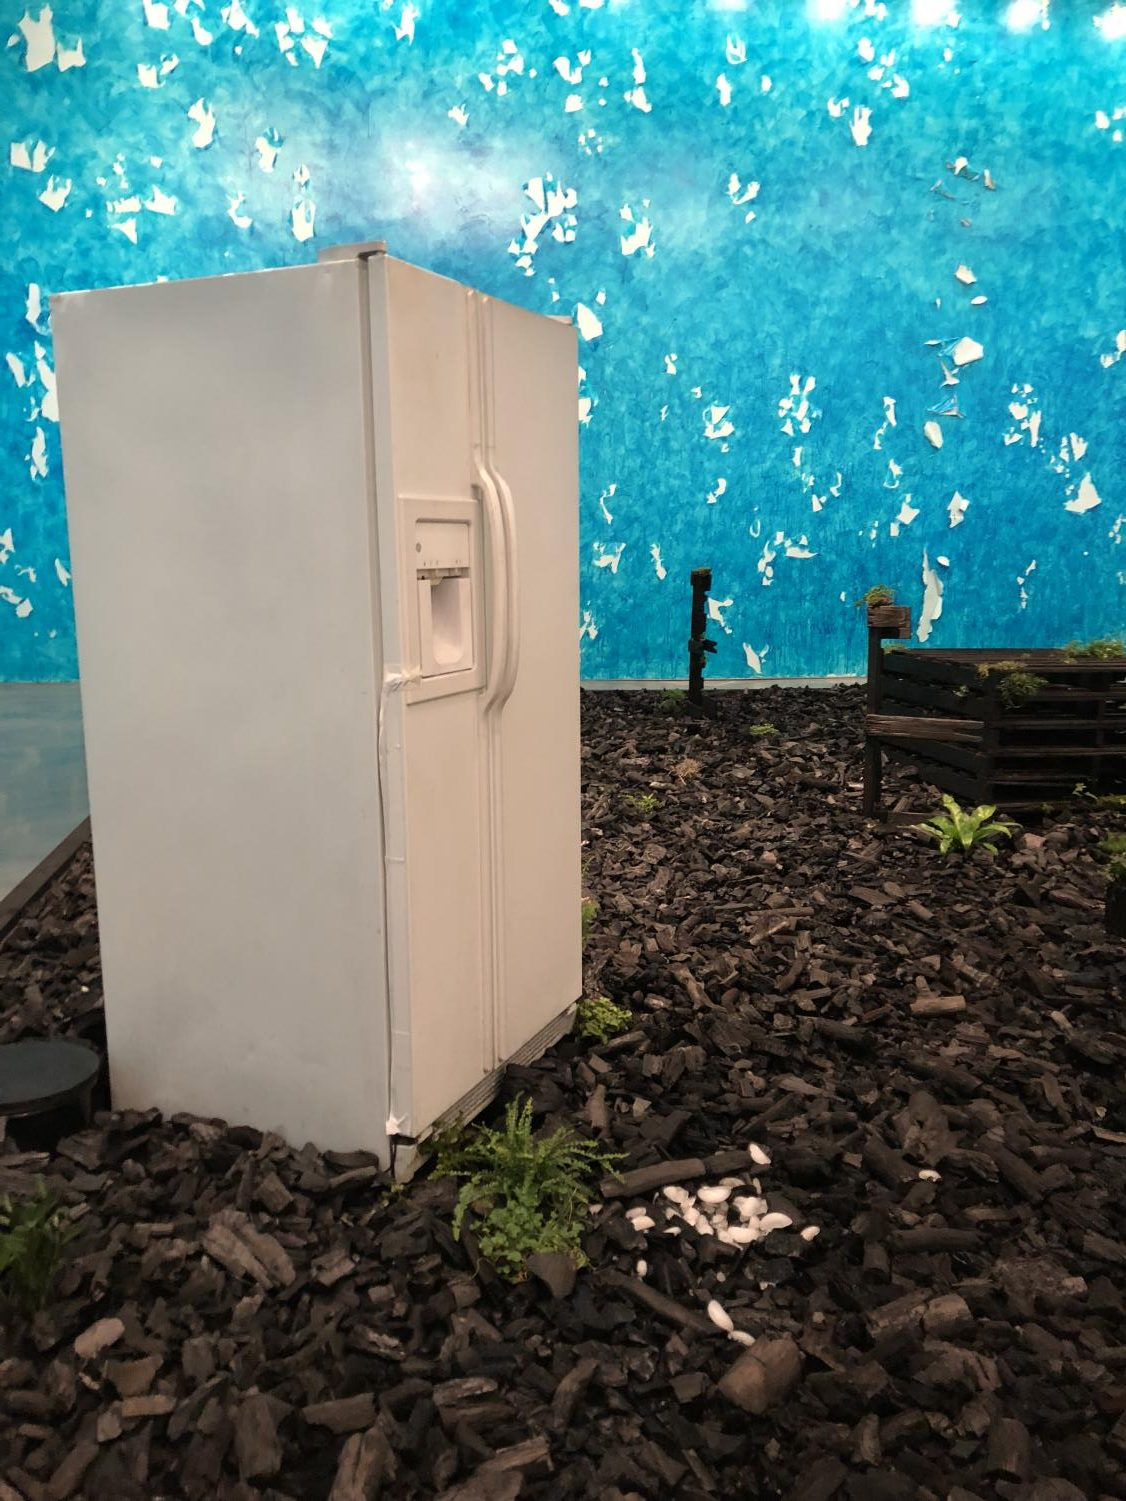 The+installation+features+a+mixture+of+plants+and+household+items%2C+like+the+refrigerator%2C+which+spits+out+an+ice+cube+every+few+minutes%2C+creating+a+closed+circuit+fountain.